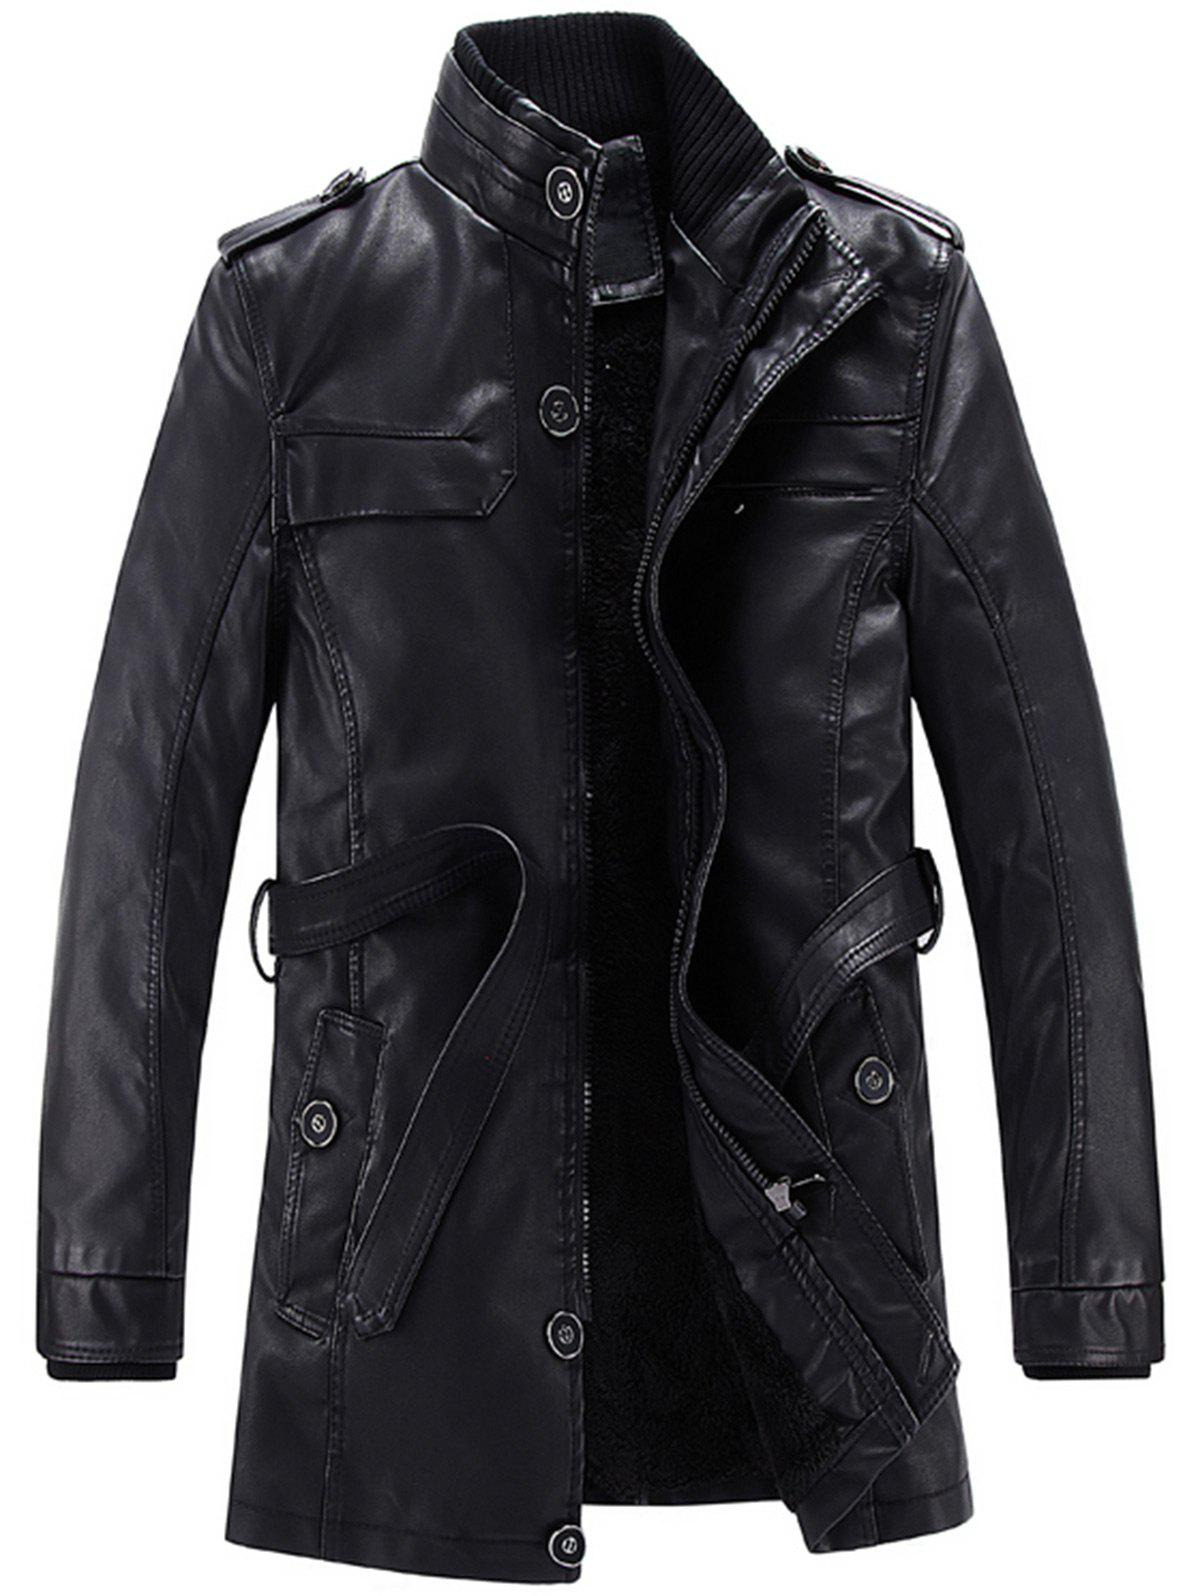 Stand Collar Epaulet Belt Fleece Faux Leather CoatMEN<br><br>Size: 3XL; Color: BLACK; Clothes Type: Leather &amp; Suede; Style: Casual,Fashion; Material: Cotton,Faux Leather; Collar: Stand Collar; Shirt Length: Long; Sleeve Length: Long Sleeves; Season: Winter; Weight: 1.3500kg; Package Contents: 1 x Coat;